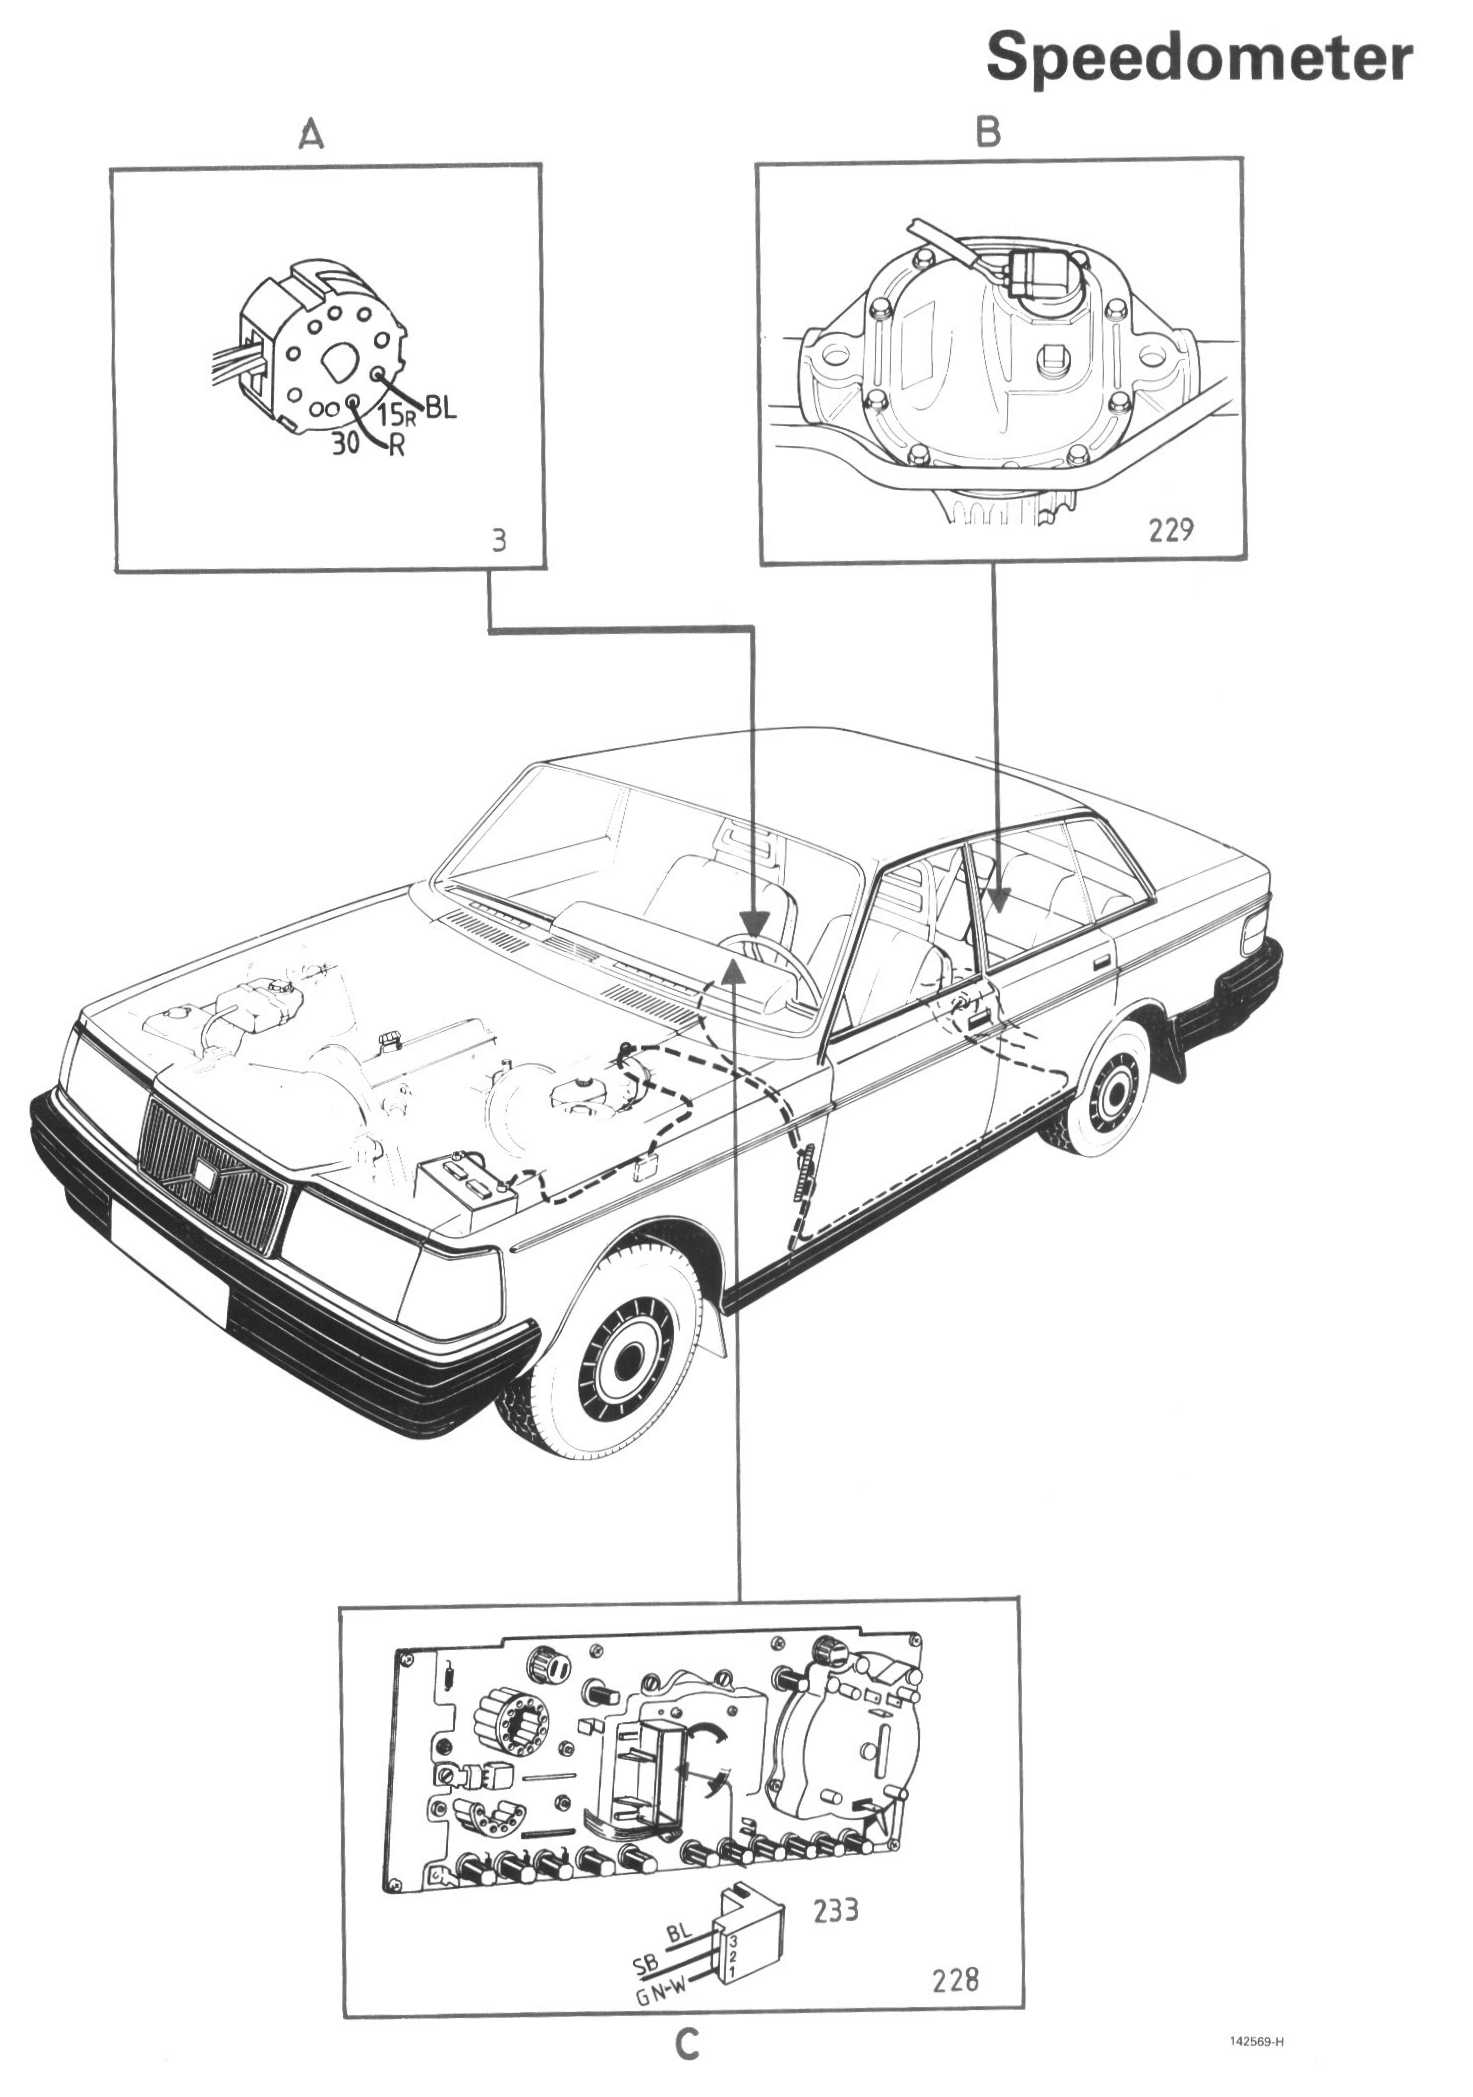 Volvo 240 Wiring Diagram - Volvo T Wiring Diagram Collection On Cruisecontrol - Volvo 240 Wiring Diagram